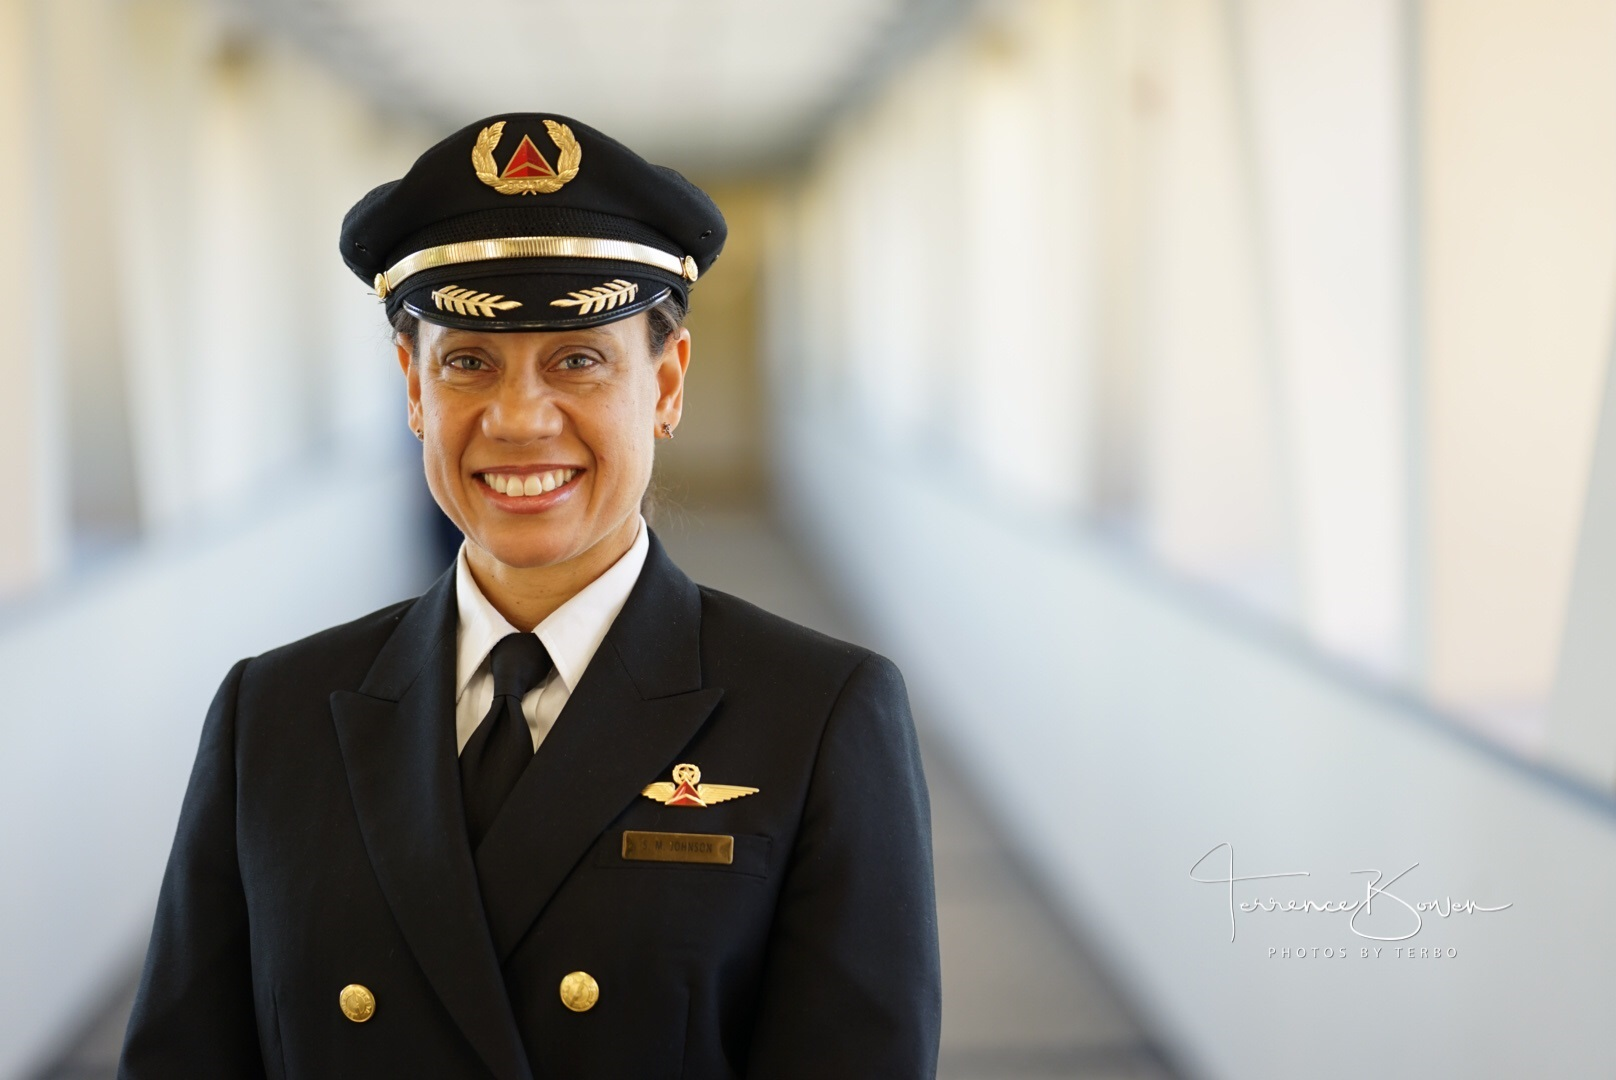 Kent State University alumna and Delta Air Lines Capt. Stephanie Johnson is the Commencement speaker for the morning ceremony on Dec. 16 at her alma mater.